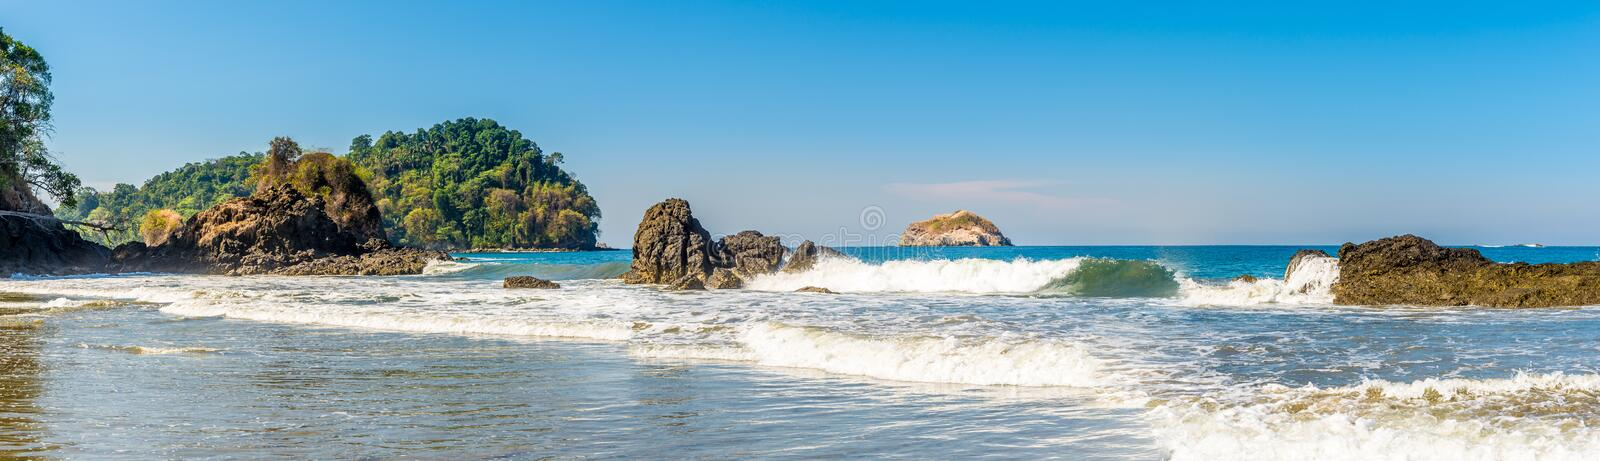 Panoramic view at the Espadilla bech in Manuel Antonio National Park - Costa Rica. Panoramic view at the Espadilla bech in Manuel Antonio National Park, Costa royalty free stock photo